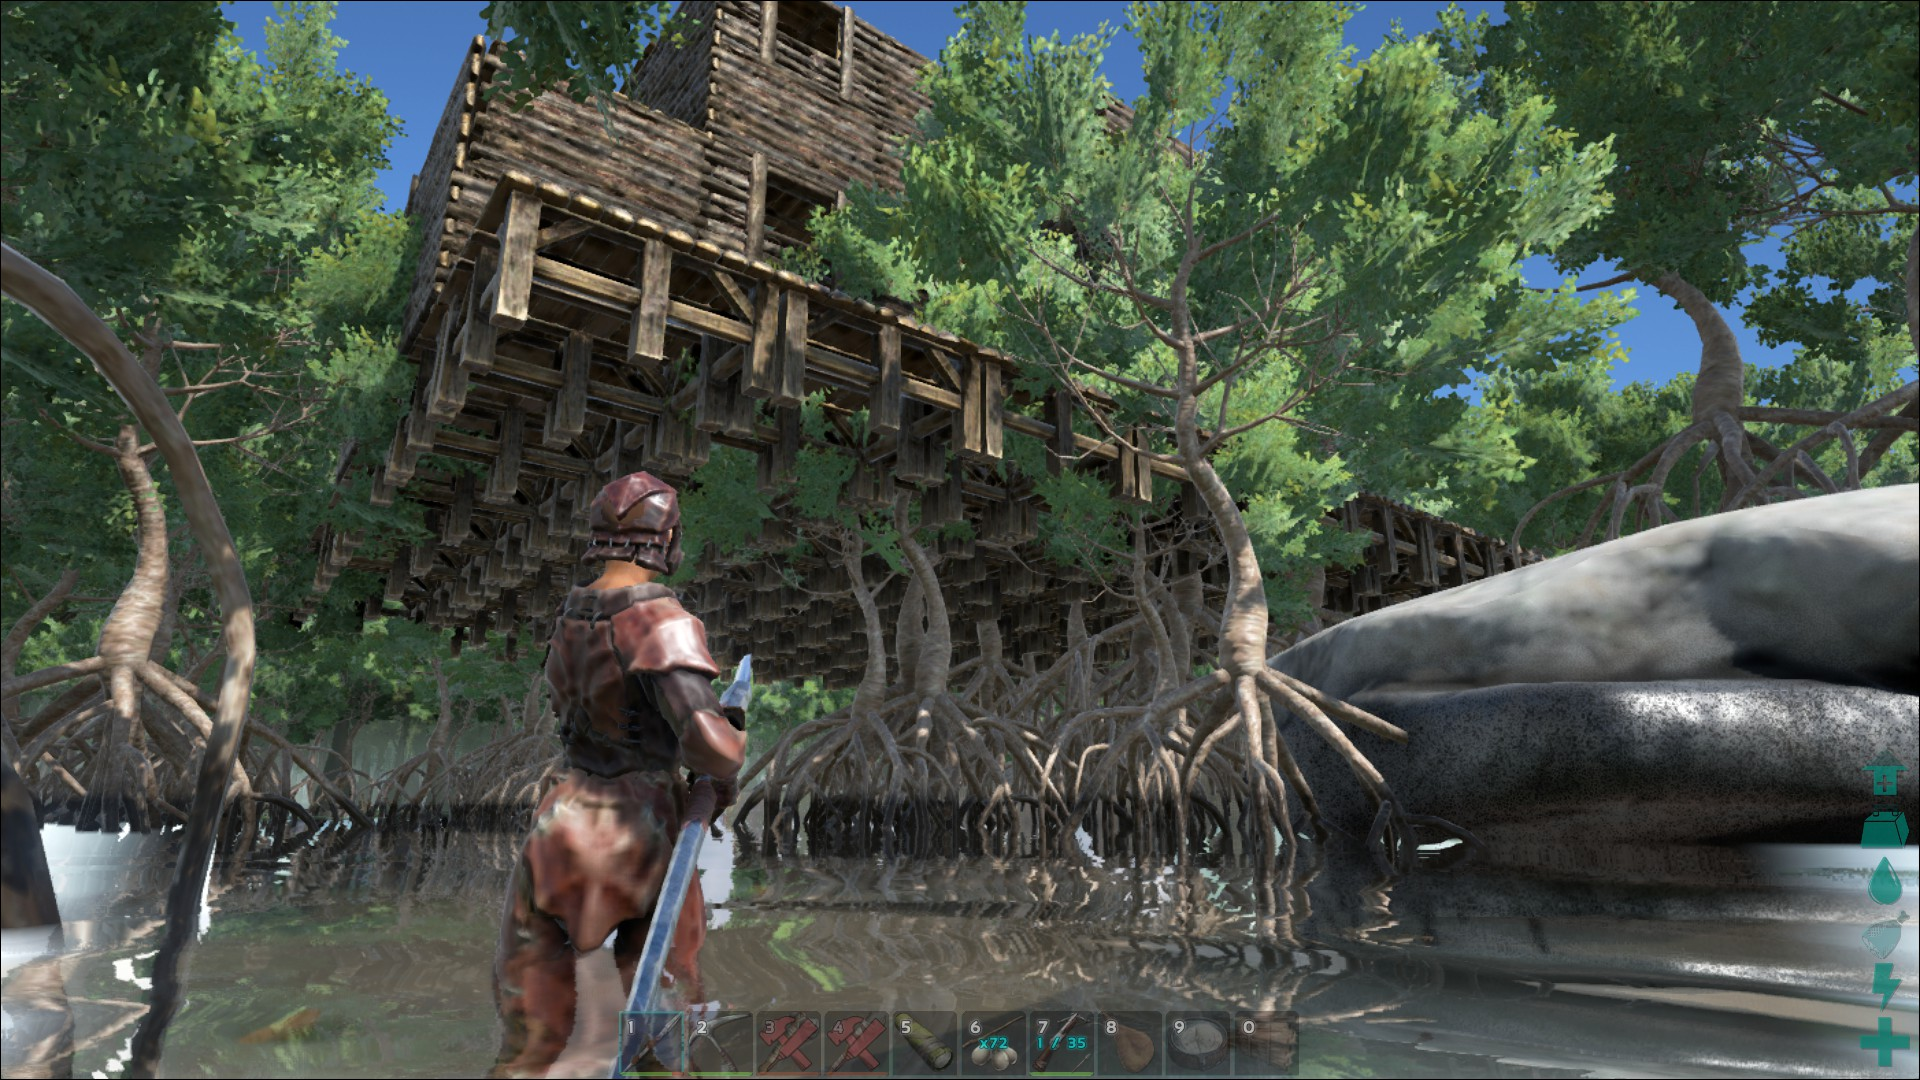 Lovely ARK: Survival Evolved